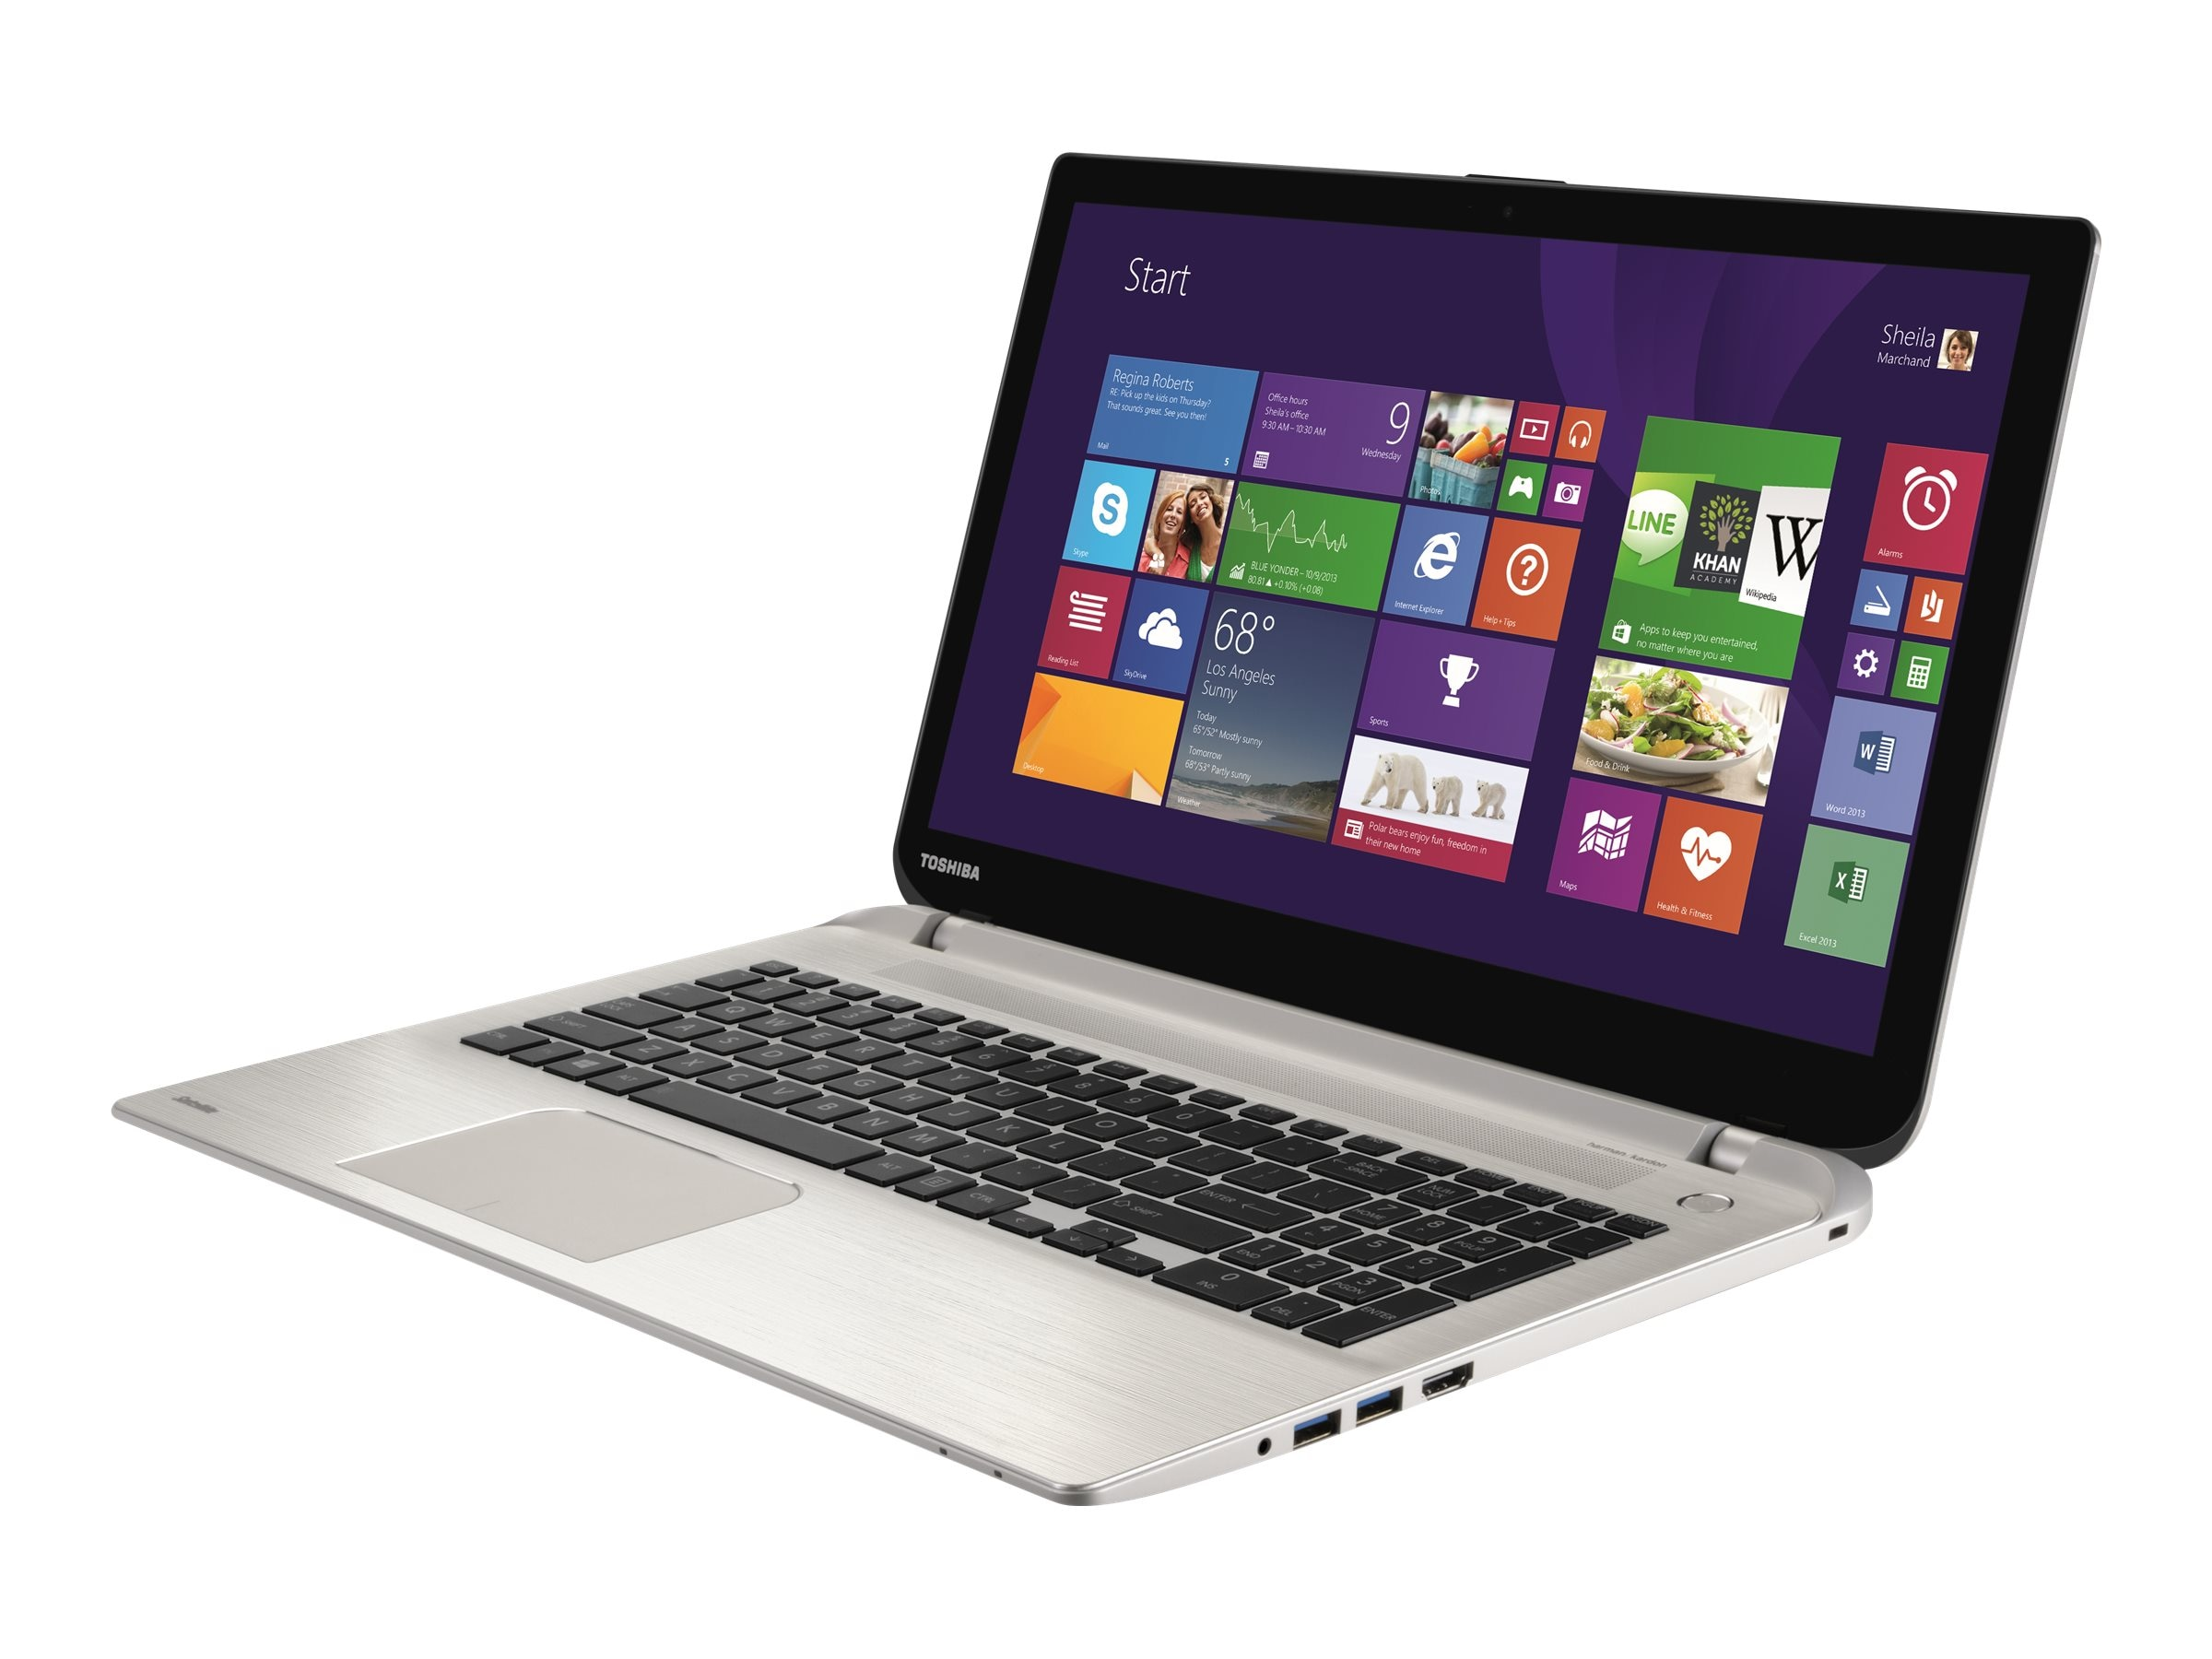 Toshiba Satellite S55T-C5168 Core i7 16GB 2TB 15.6 4K W10, PSPUGU-00700G, 31052655, Notebooks